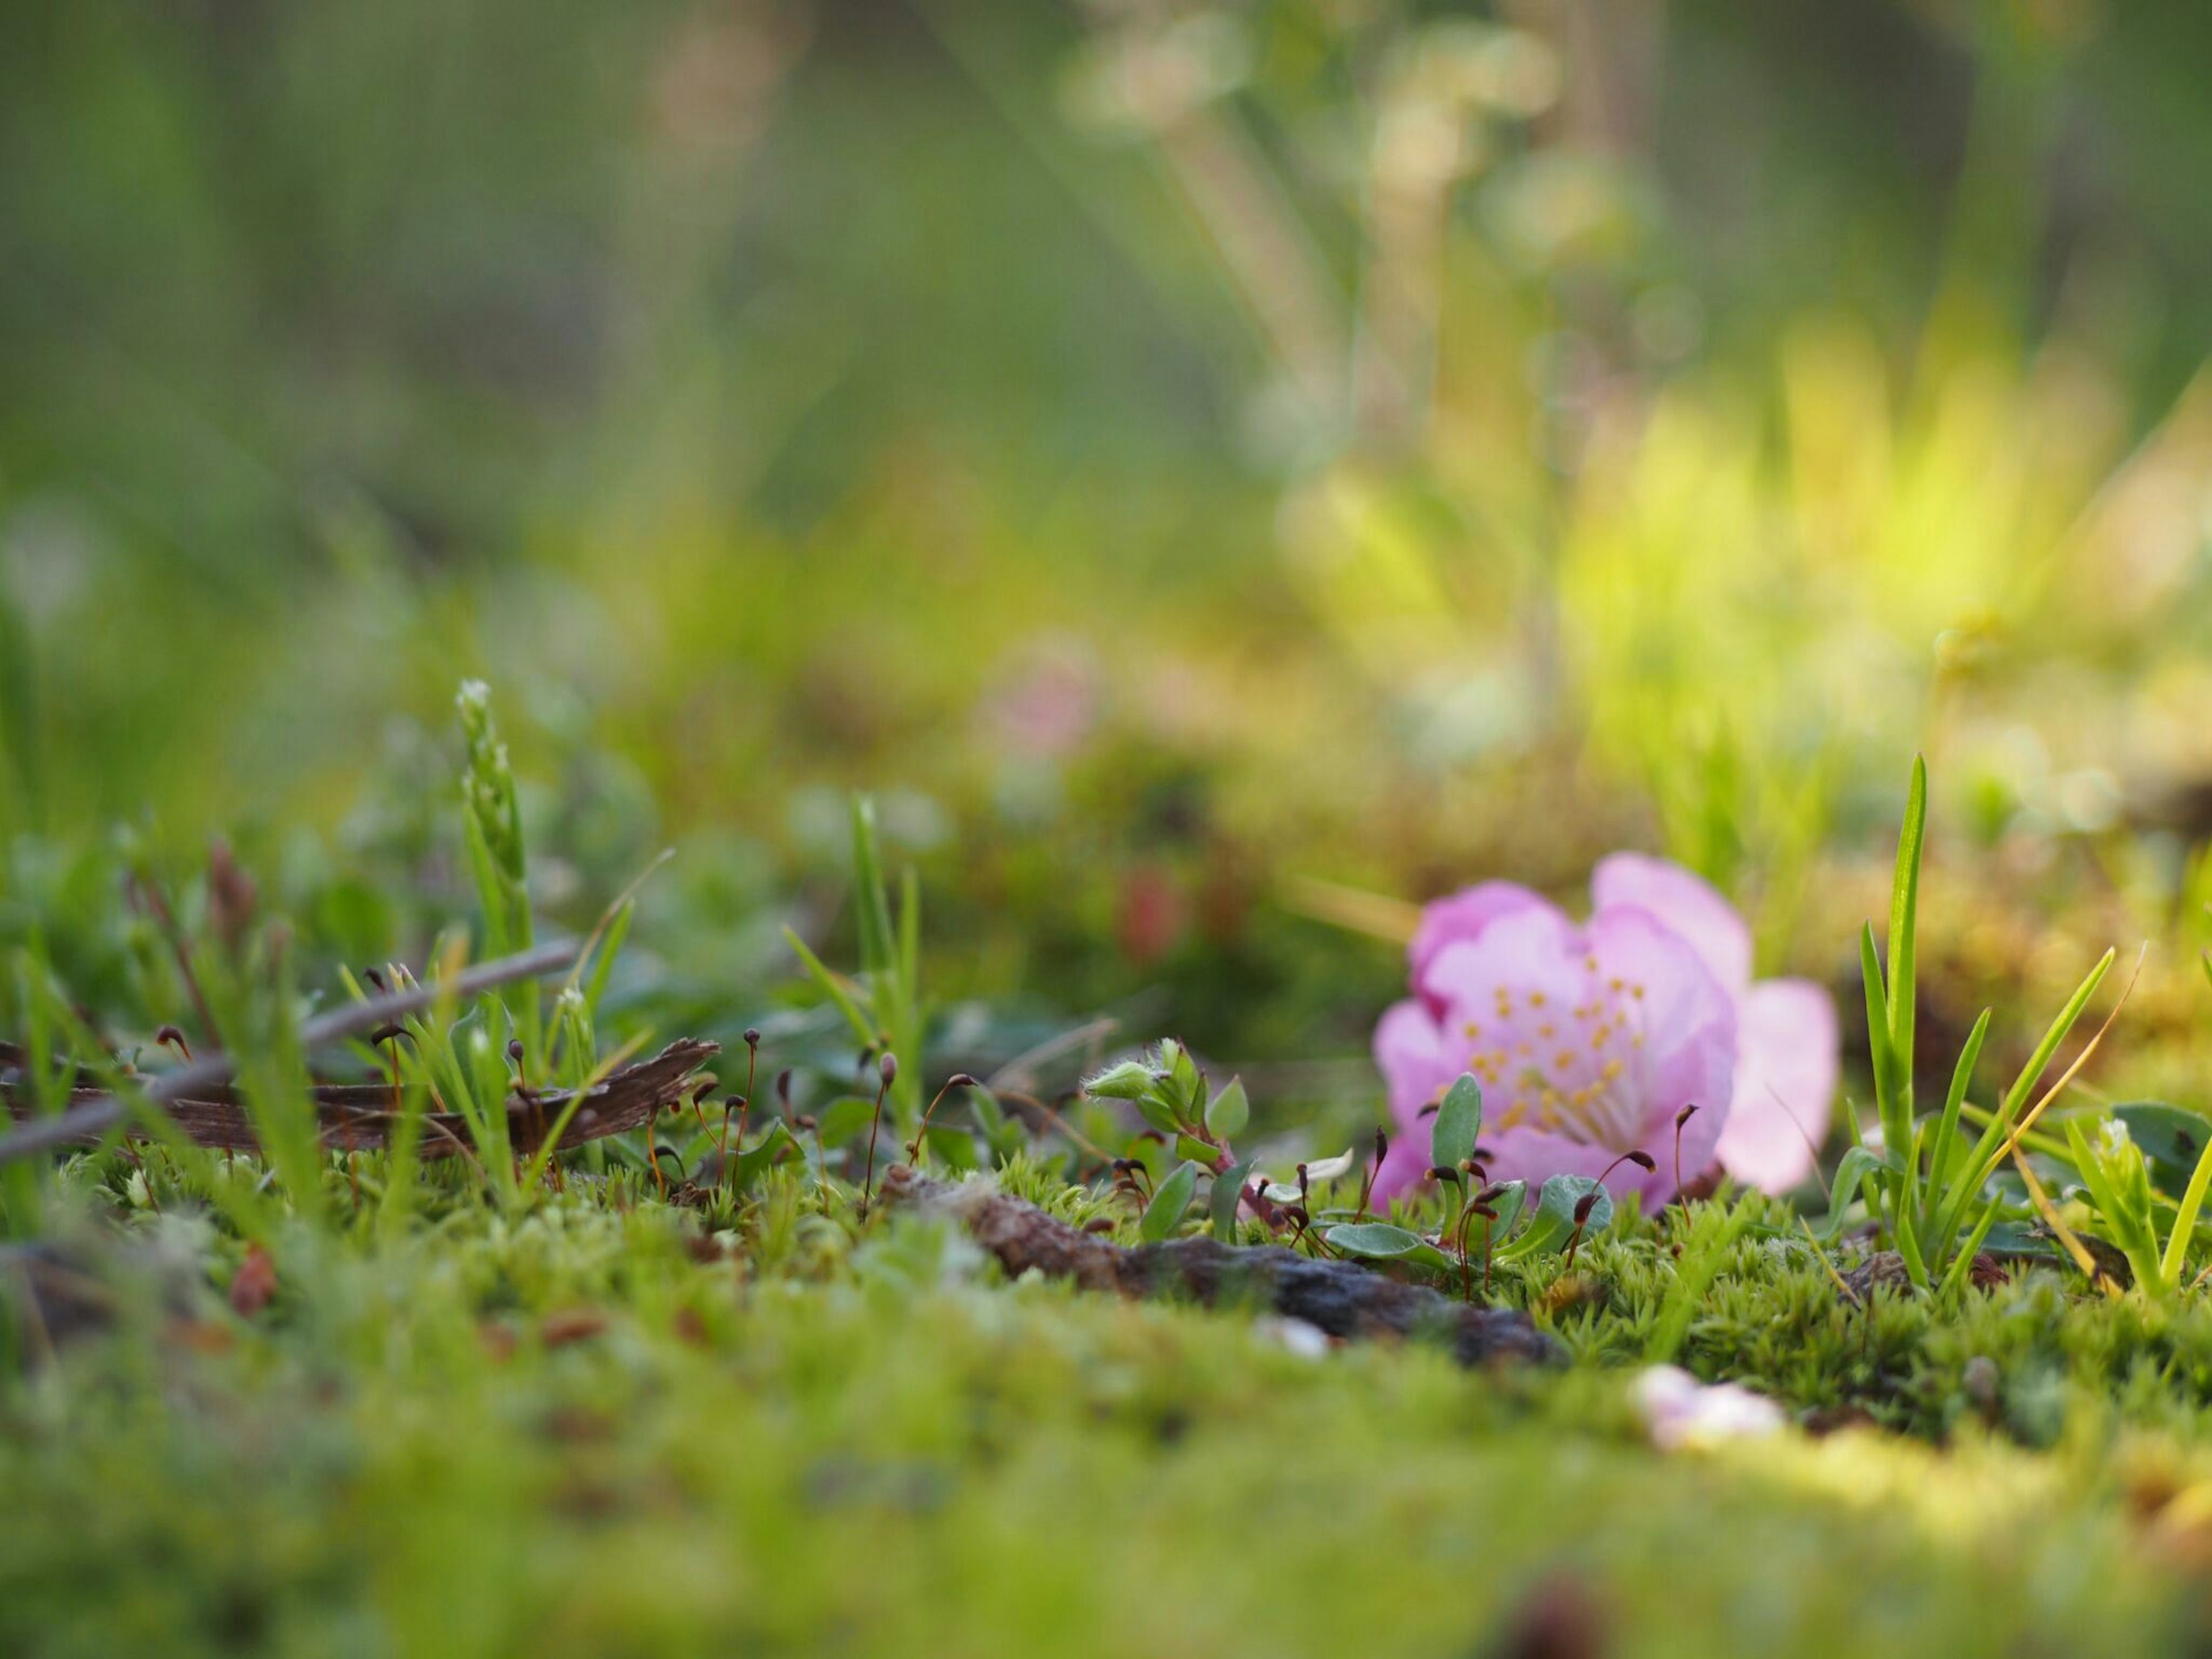 flower, growth, nature, beauty in nature, selective focus, freshness, fragility, grass, plant, petal, outdoors, no people, close-up, green color, day, blooming, flower head, crocus